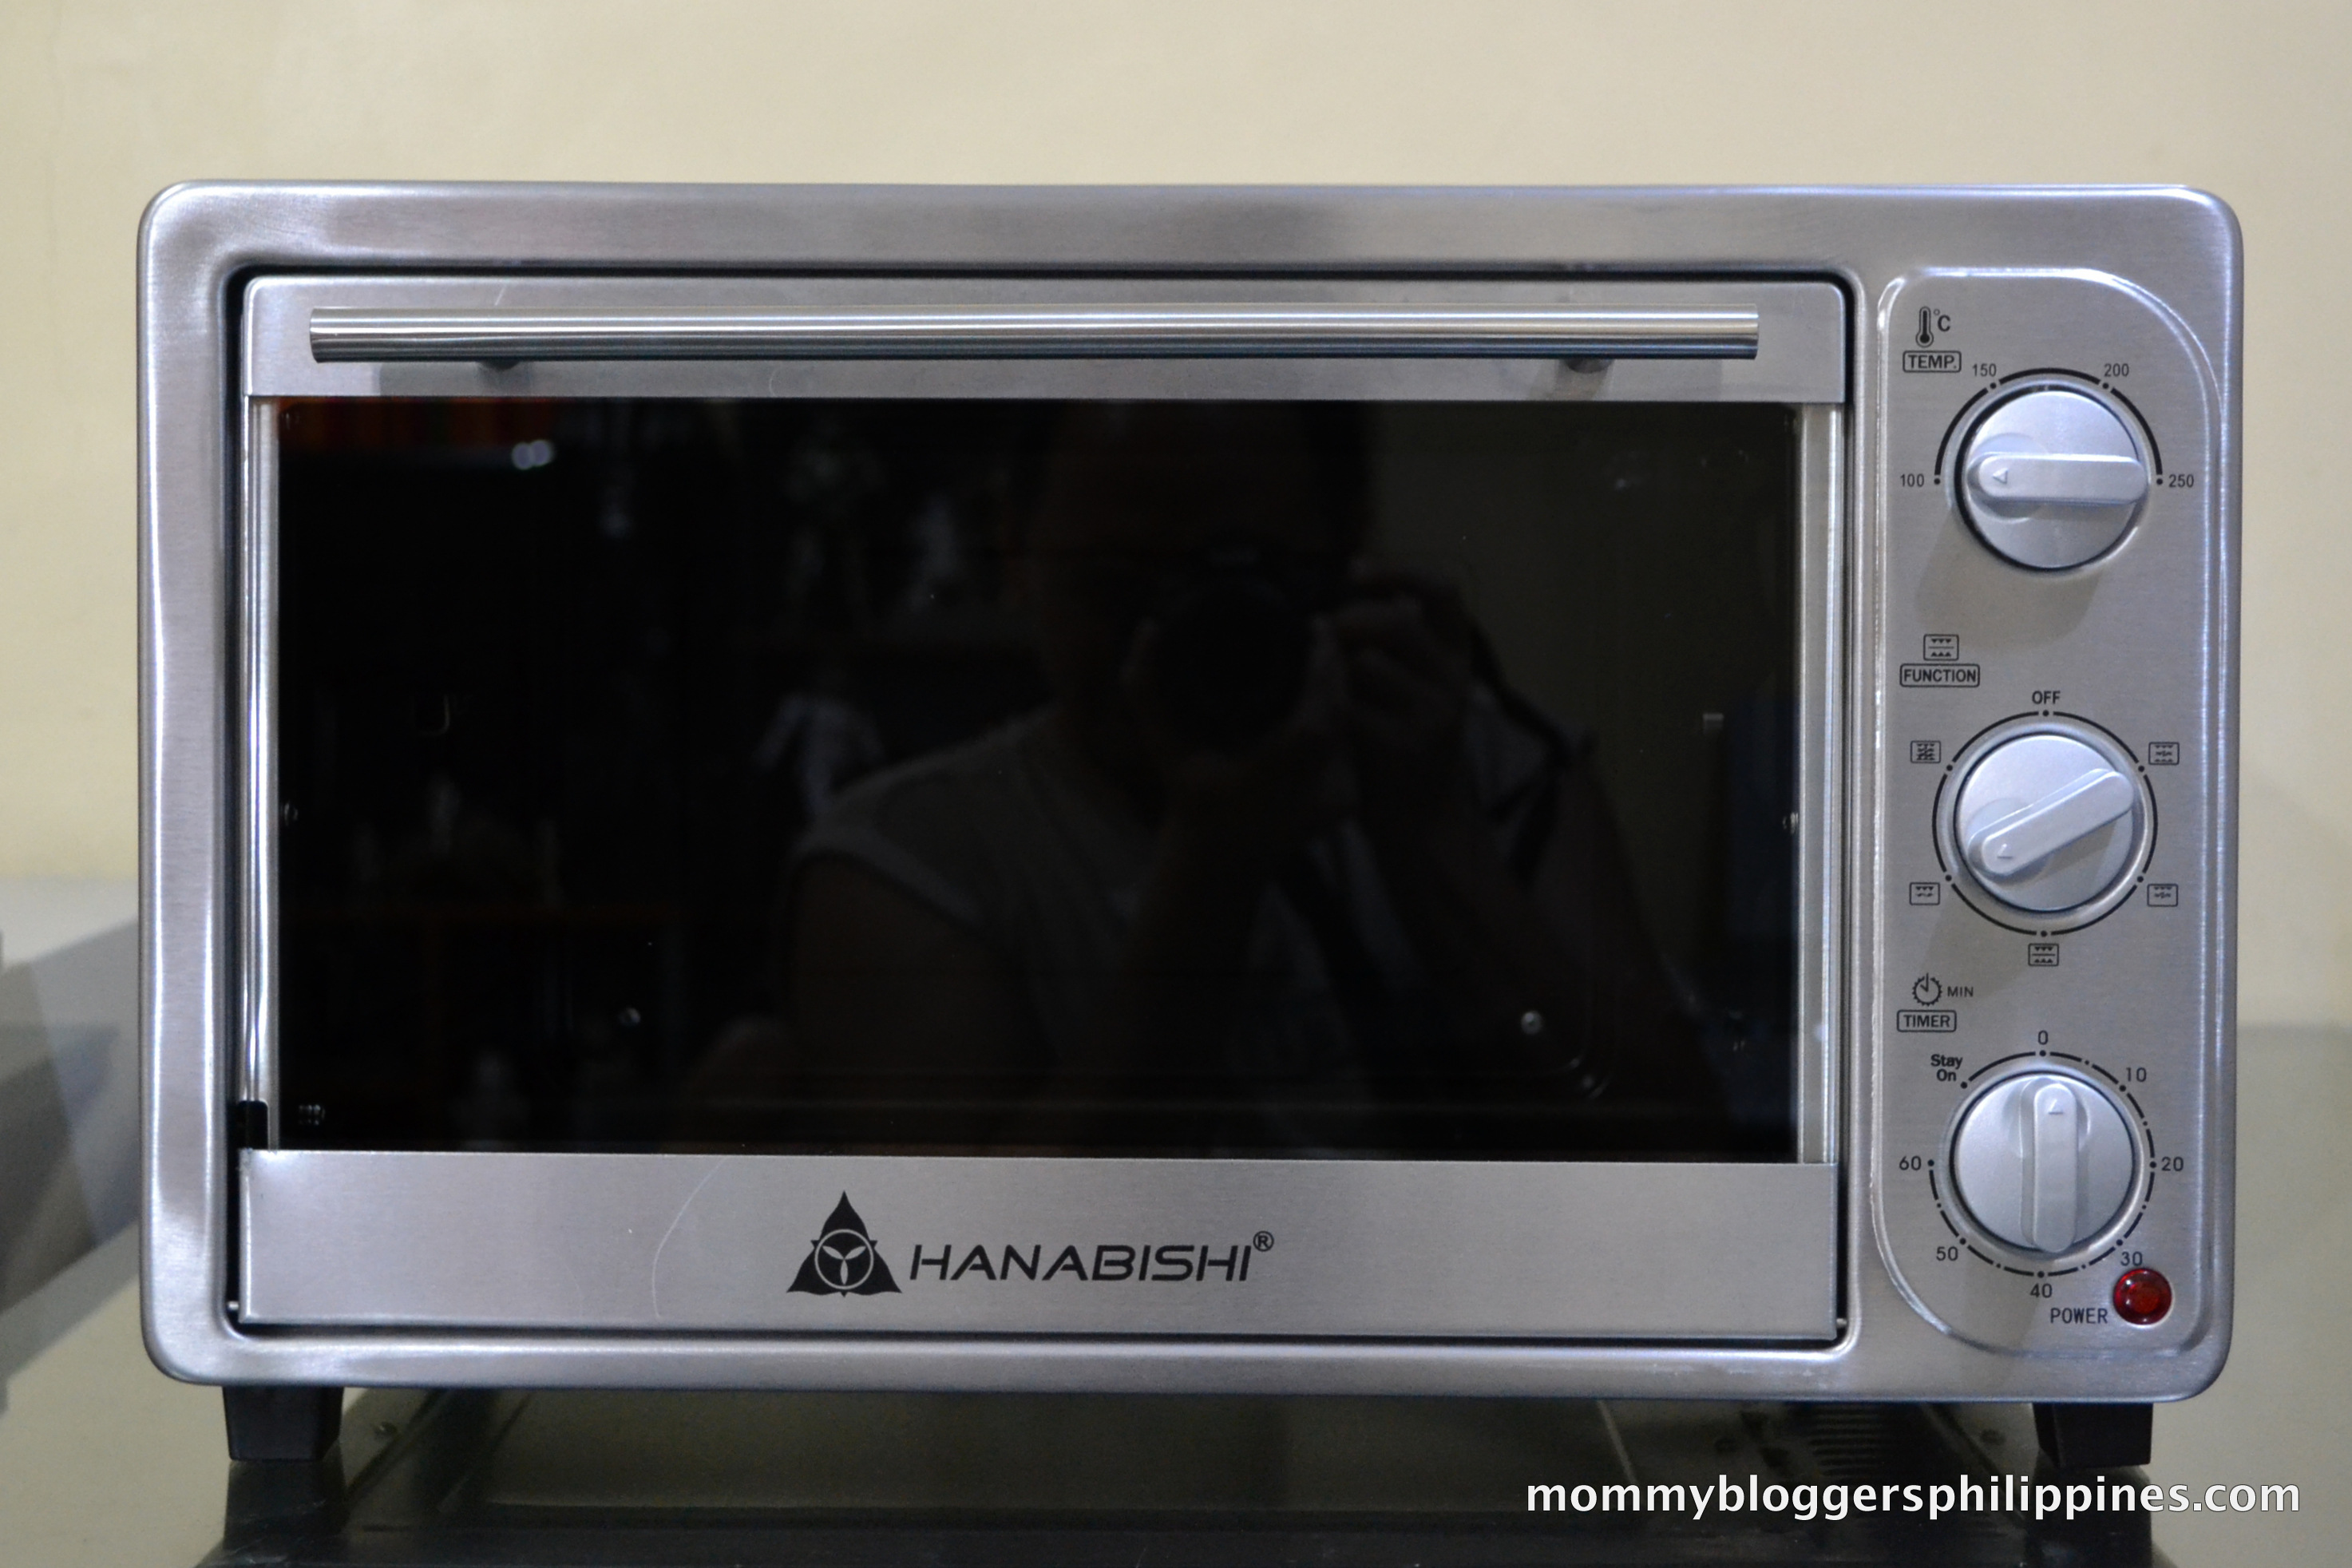 Countertop Oven Philippines Hanabishi Stainless Steel Electric Oven A User And